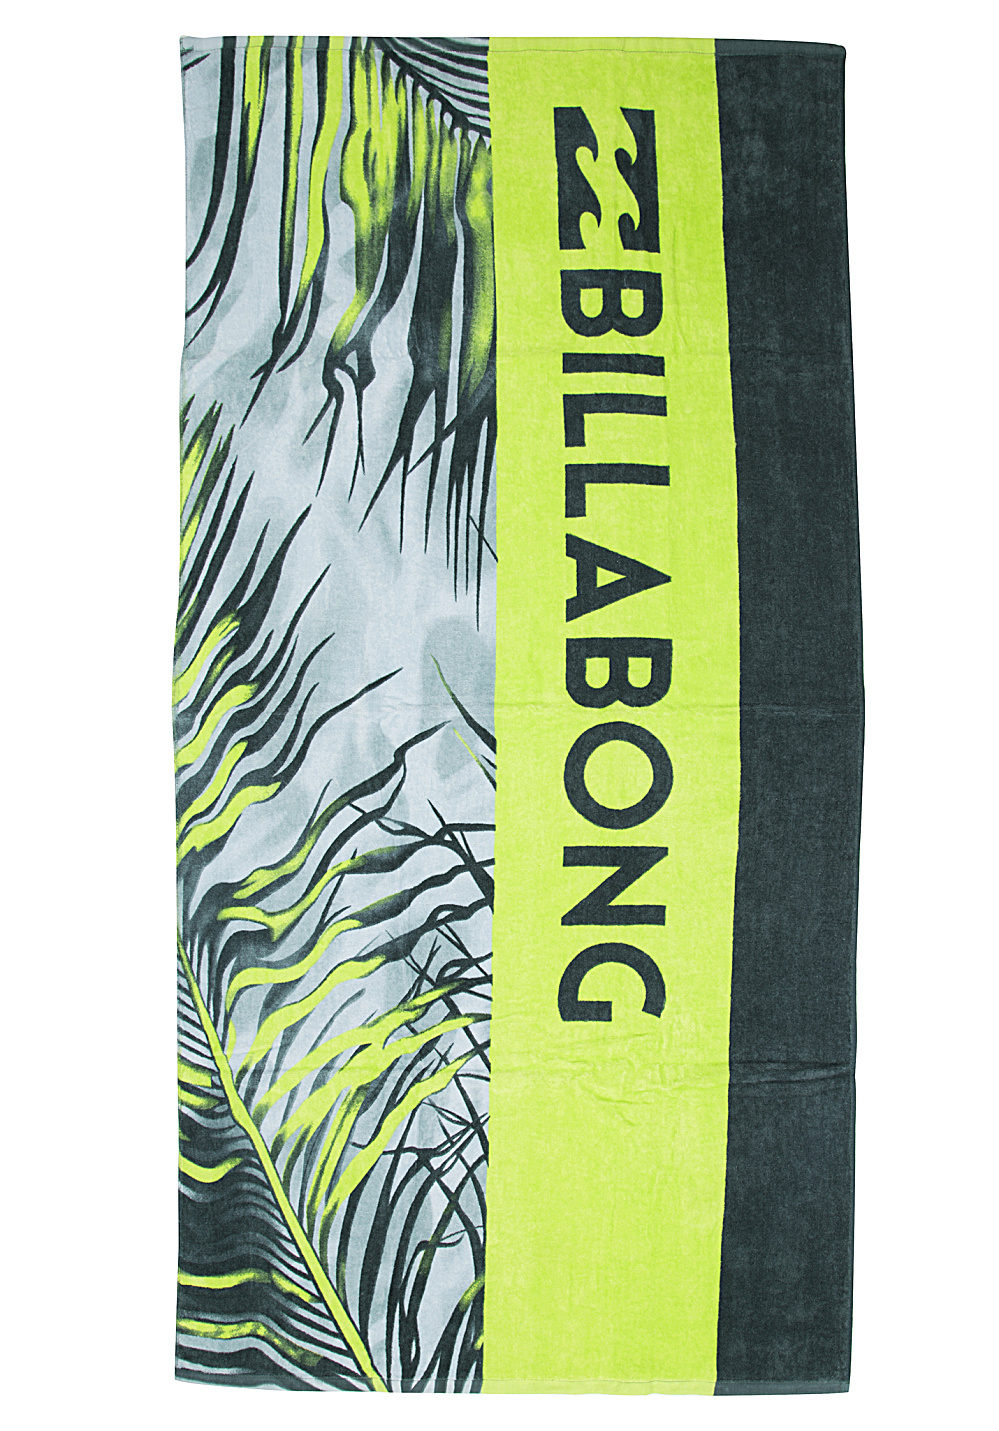 billabong tribong serviette de plage pour homme. Black Bedroom Furniture Sets. Home Design Ideas